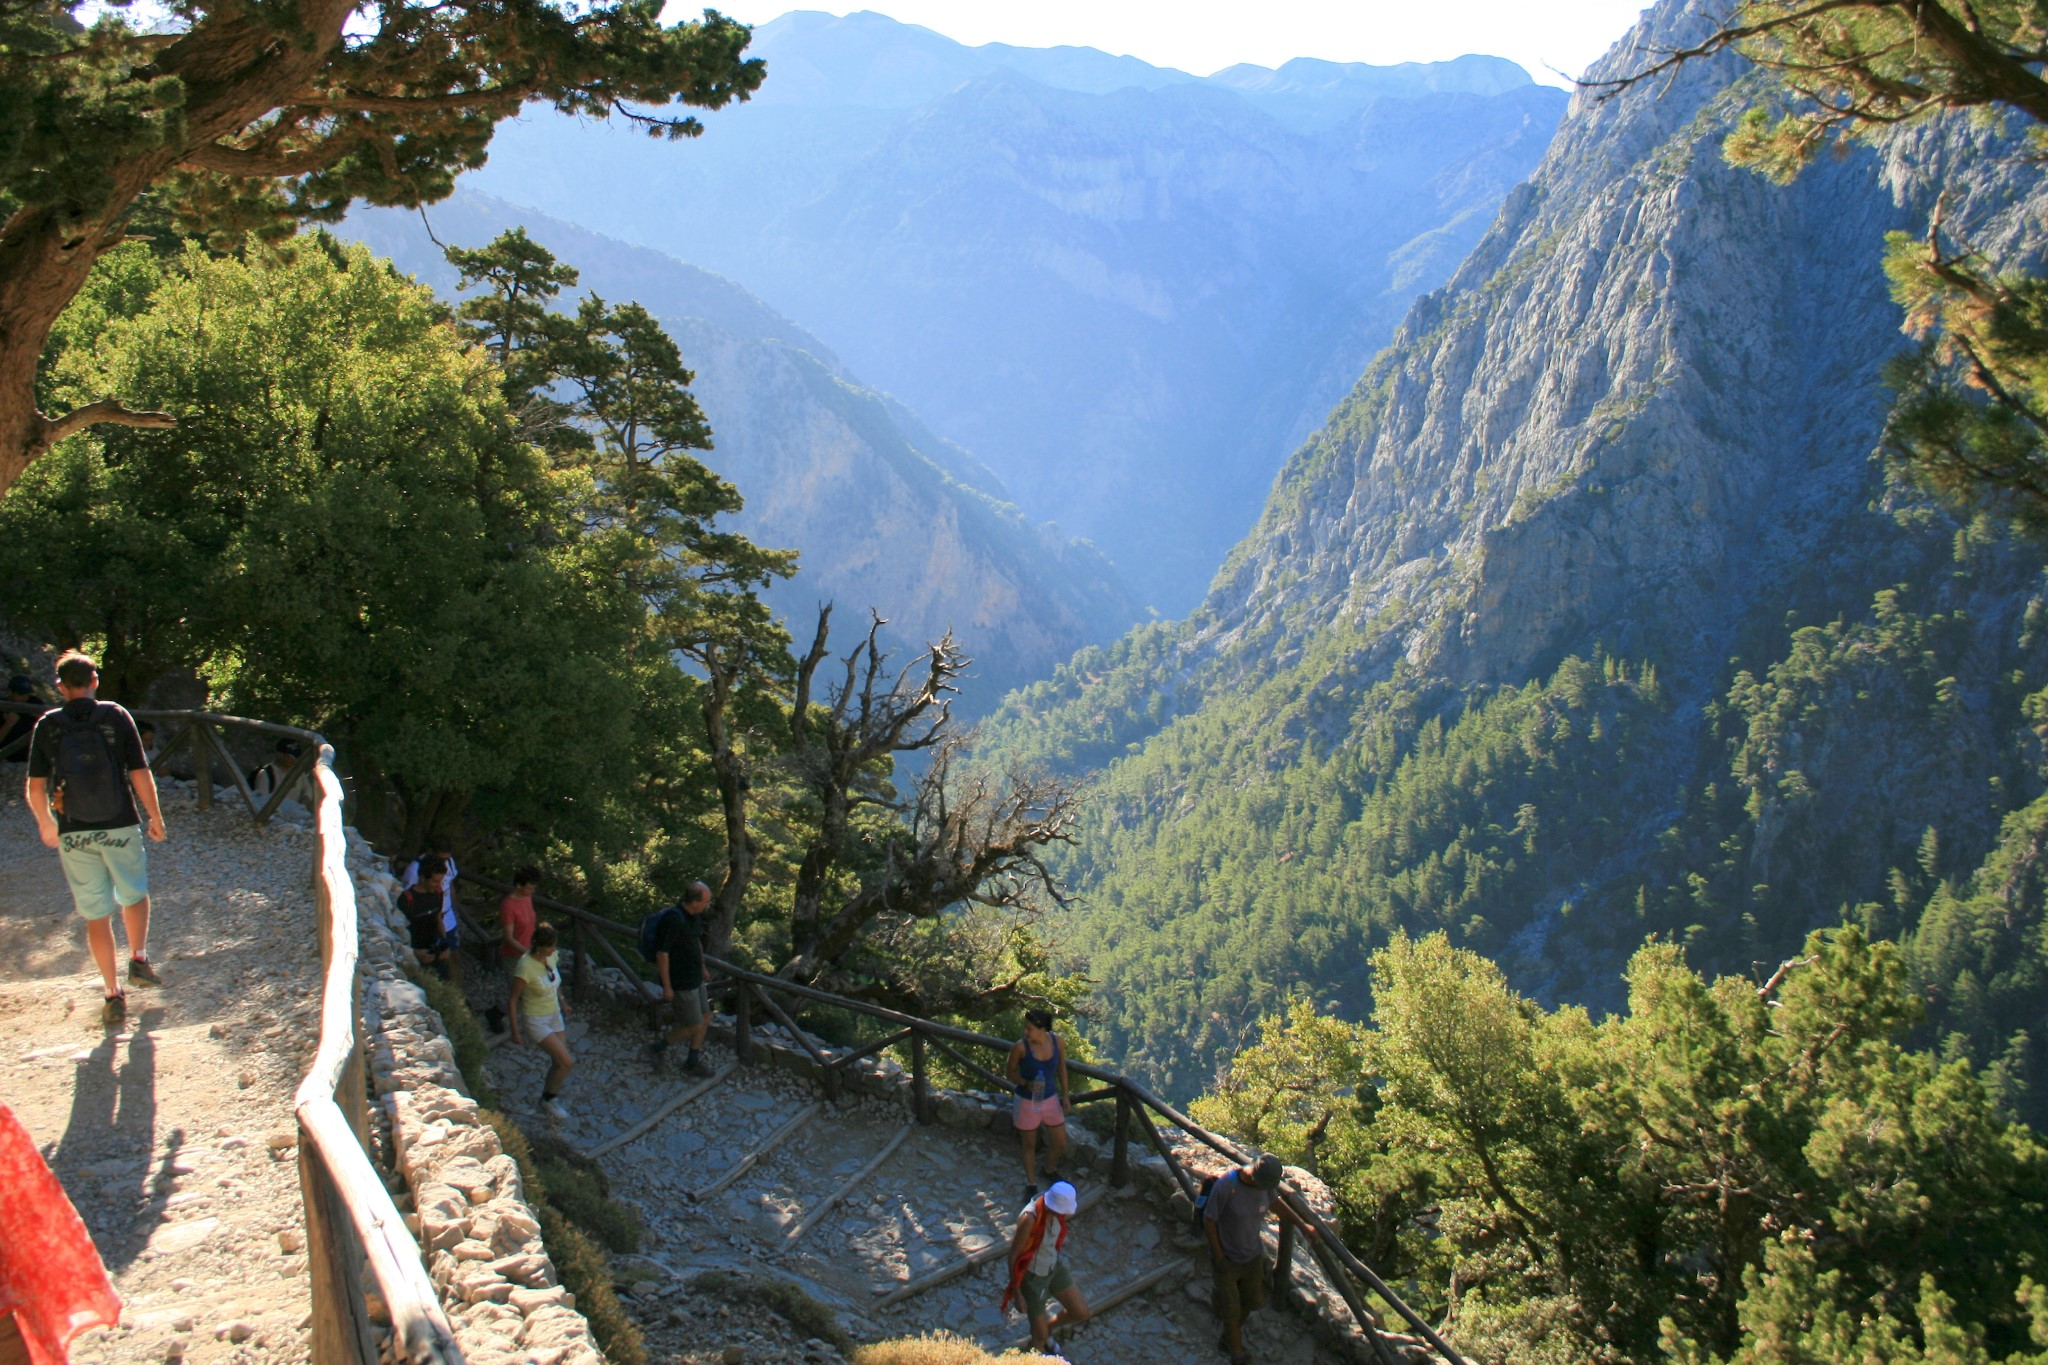 Initially we descend from Xyloskalo to the riverbed of Samaria Gorge